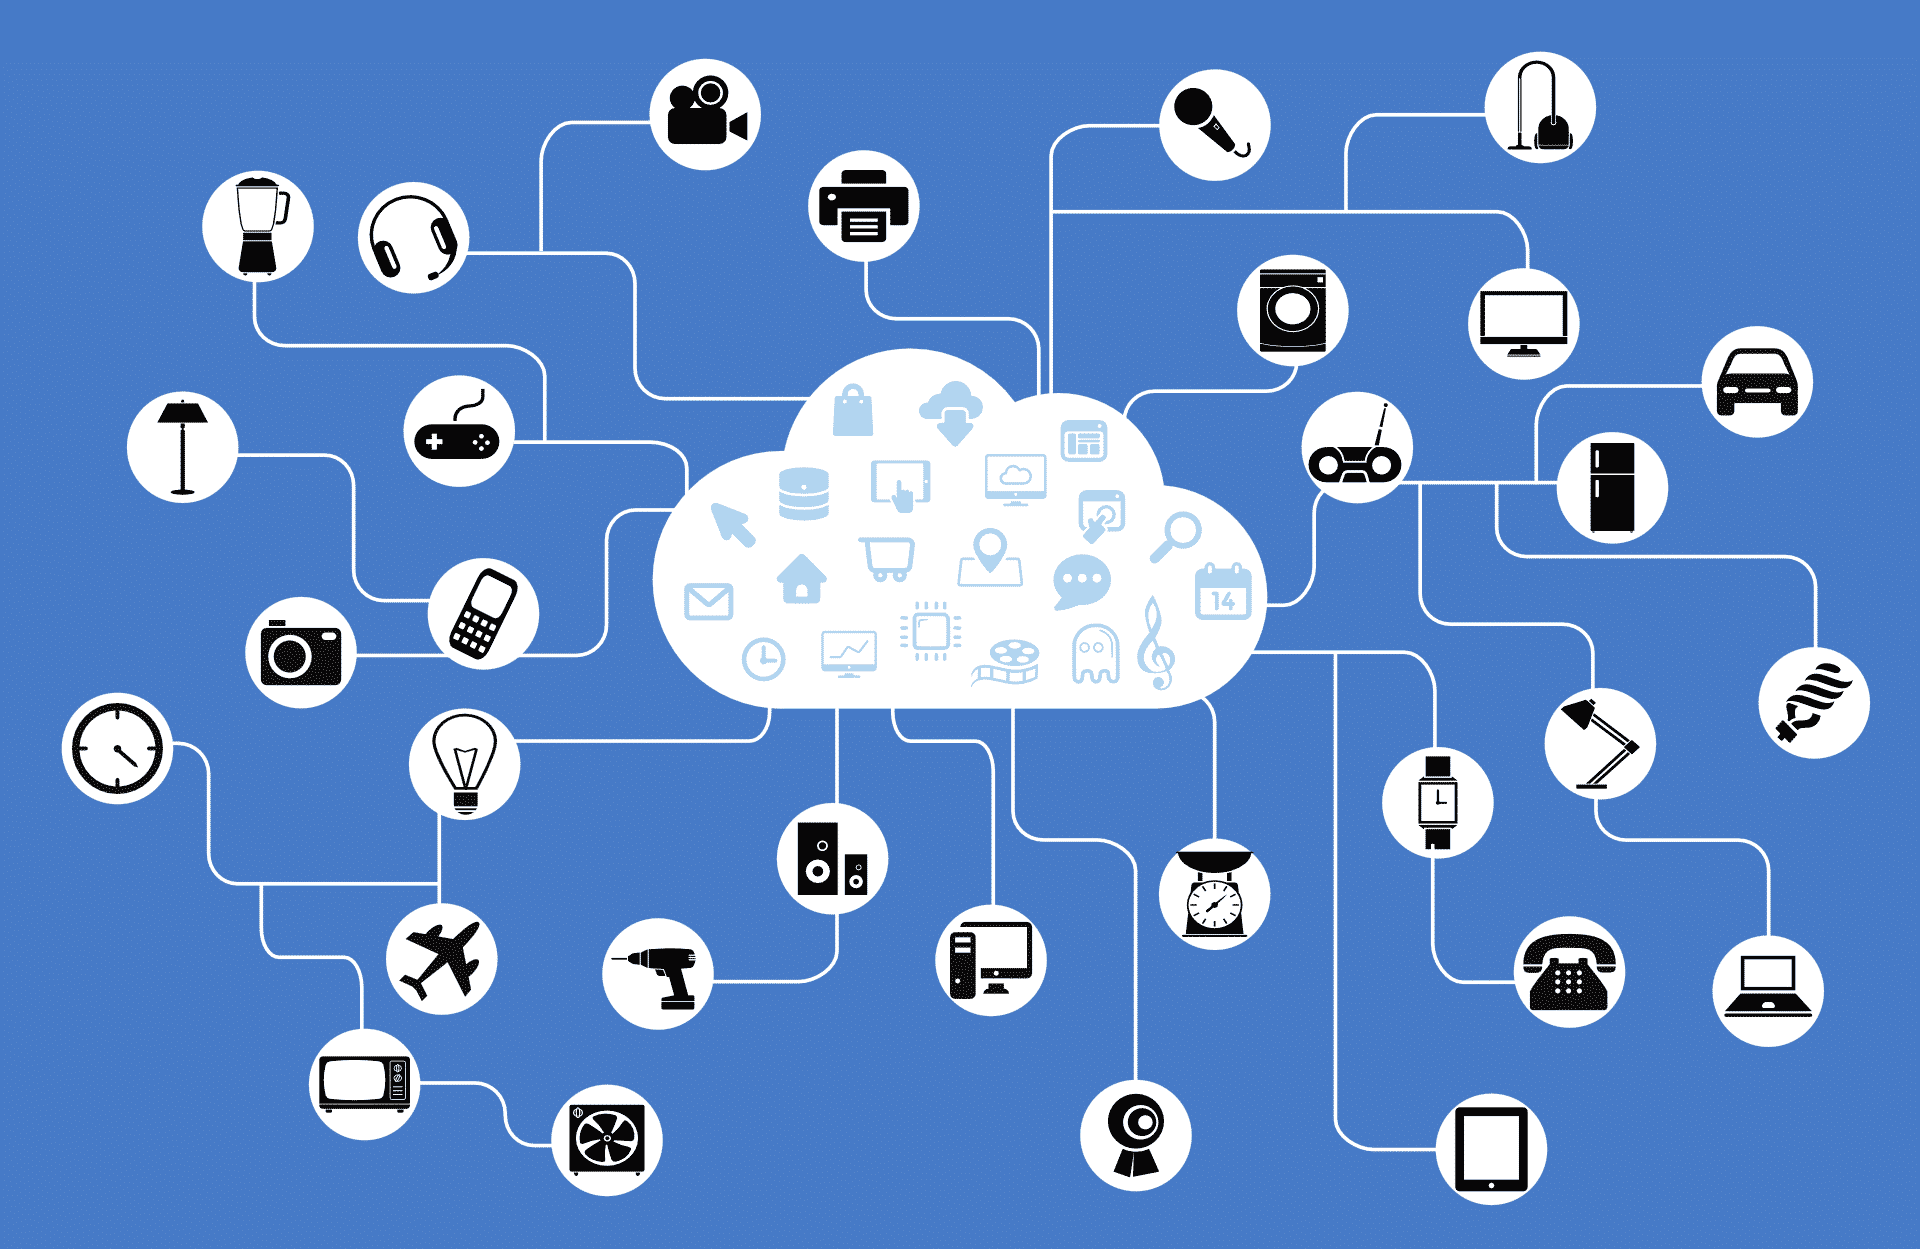 Representative image showing various devices connected to the cloud